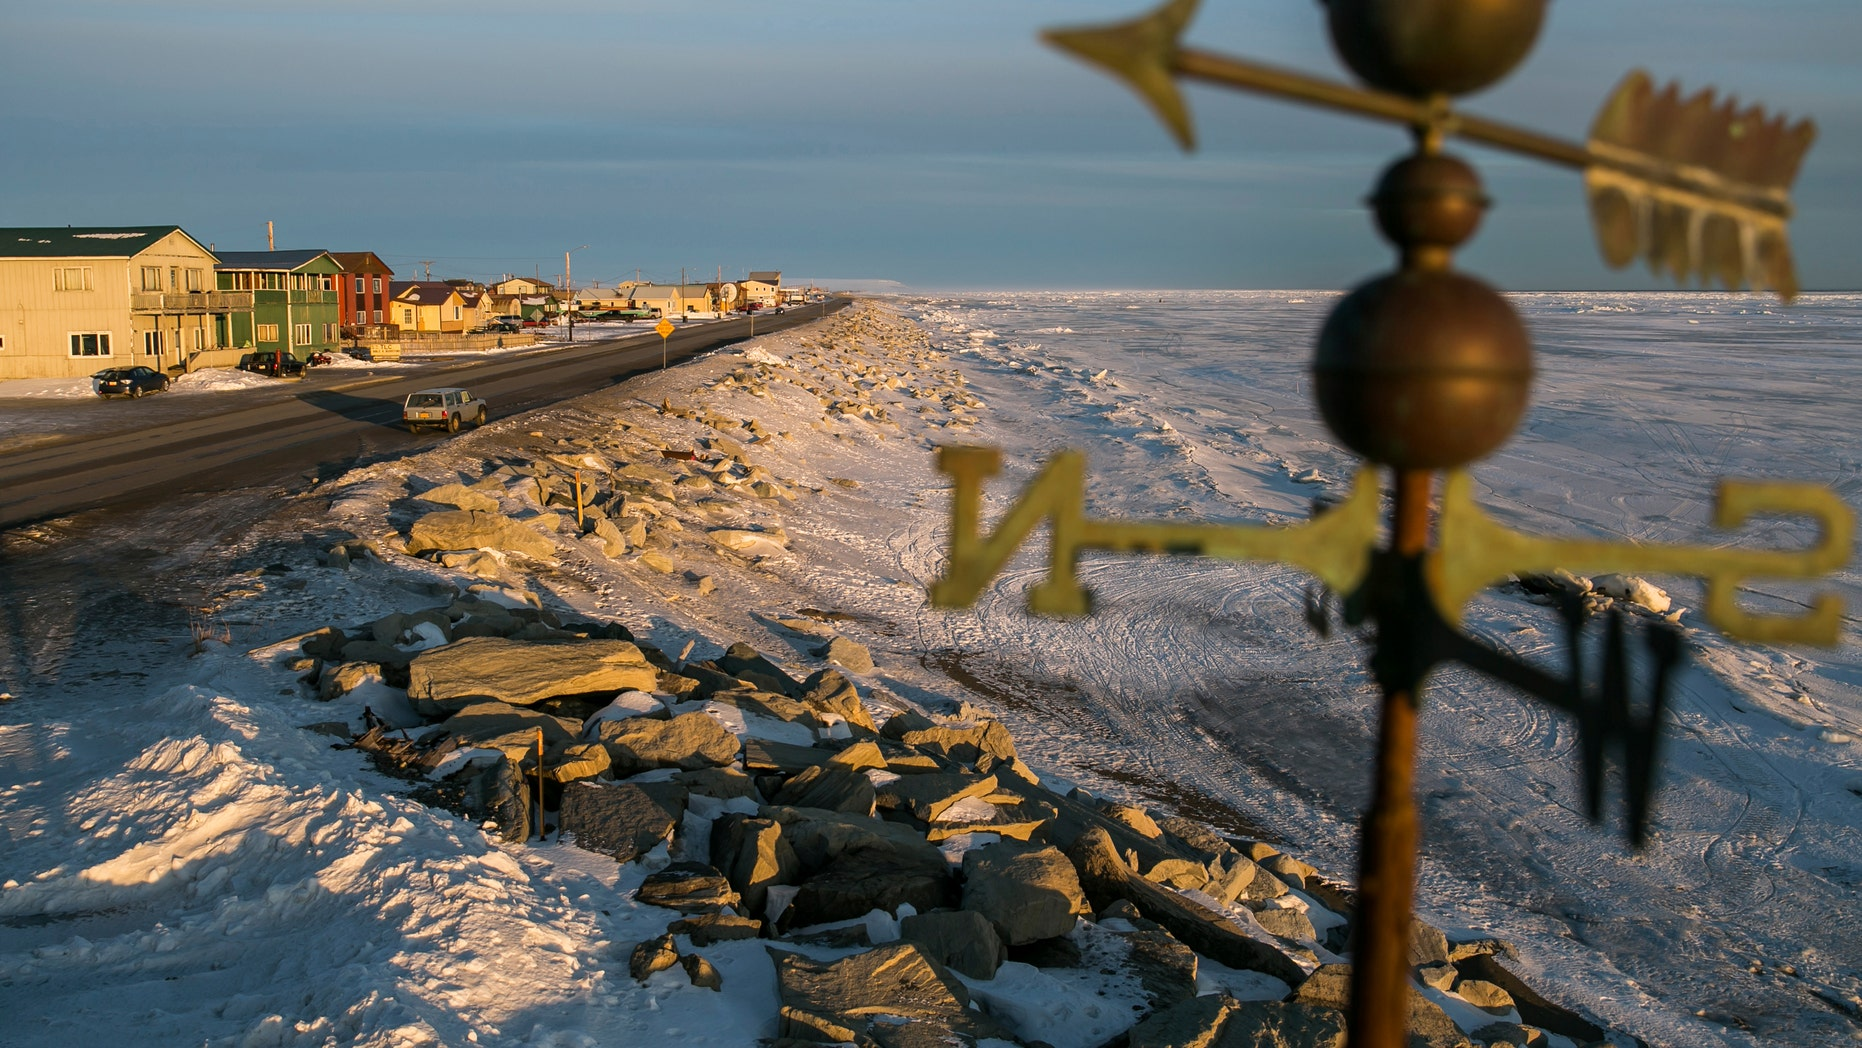 Mar. 10, 2014: A frozen beach on the Bering Sea coast is seen near the last stretch mushers must pass before the finish line of the Iditarod dog sled race in Nome, Alaska.